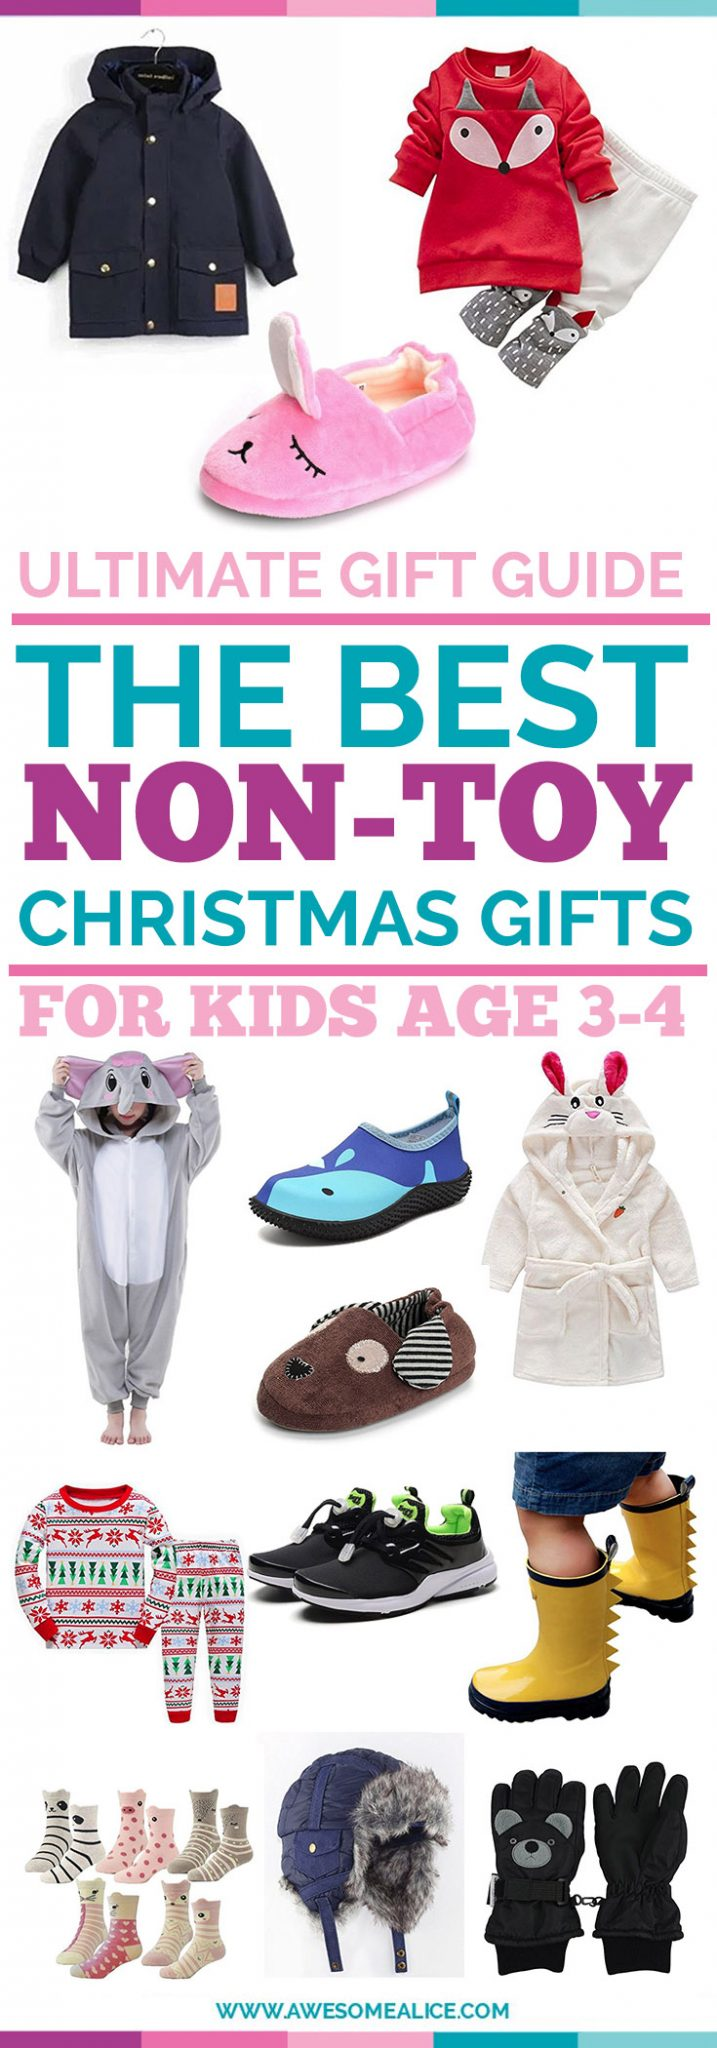 Christmas Gift Guide For Kids: The Ultimate Gift Guide For Kids Age 0-6